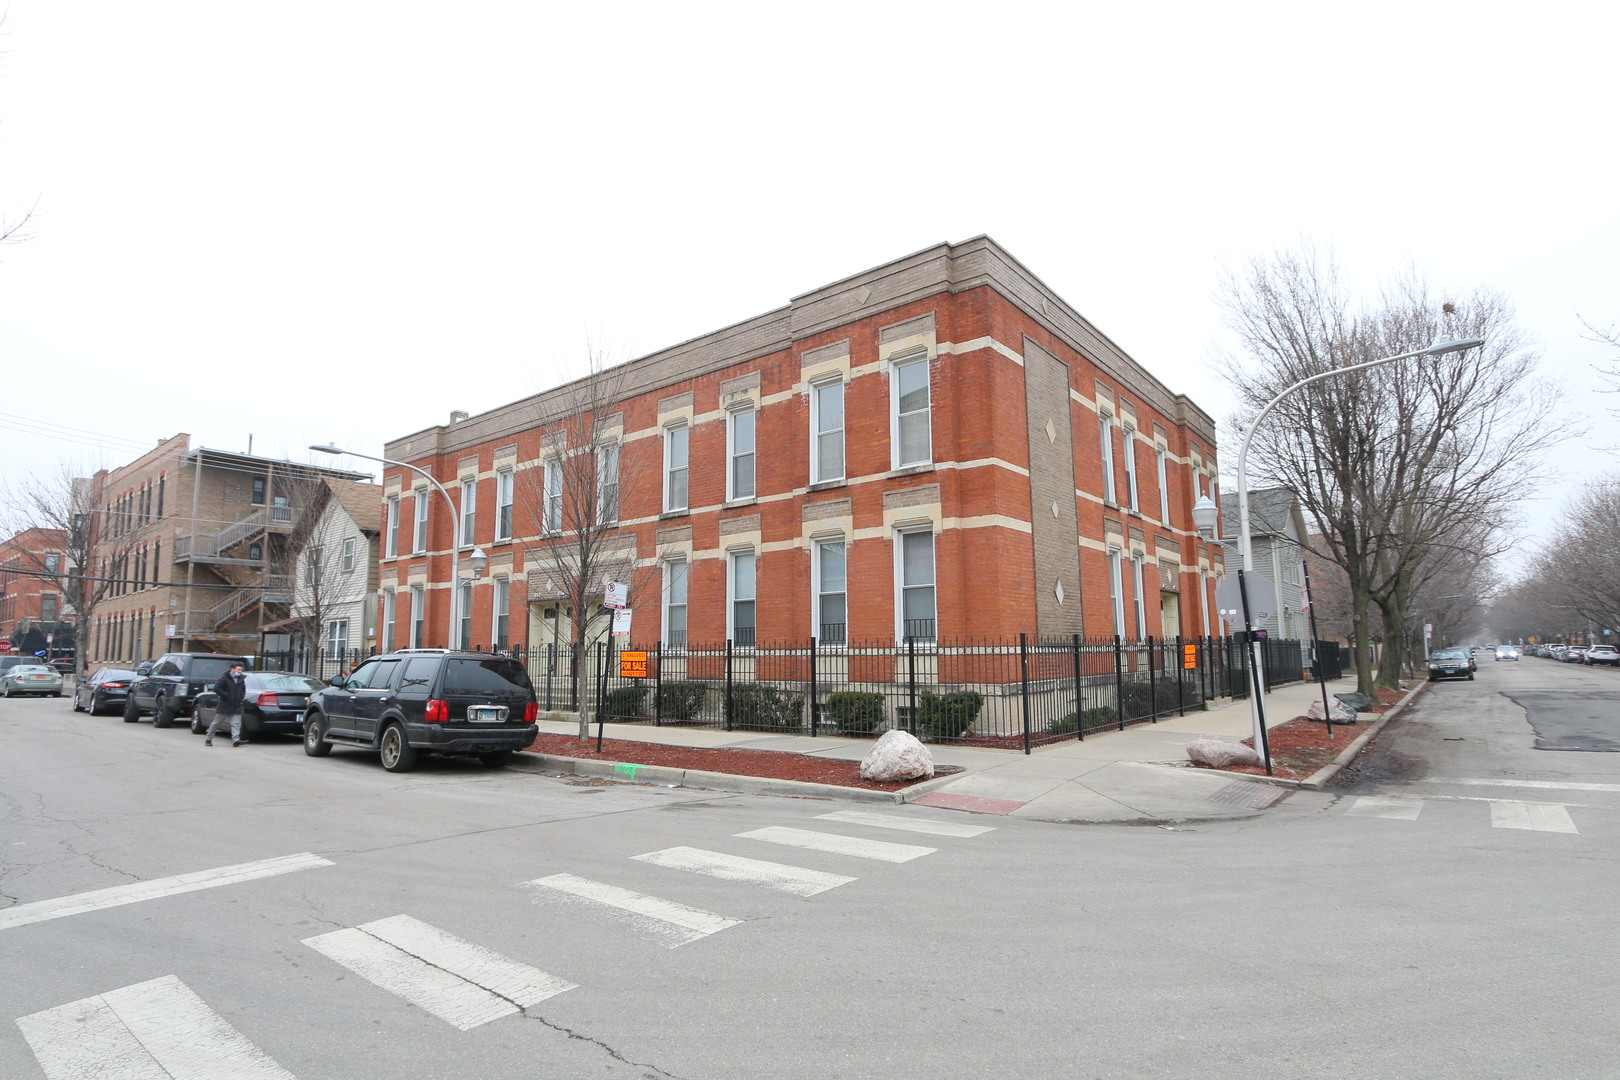 LONG TERM FAMILY OWNED PROPERTY LOCATED IN THE LITTLE ITALY/UNIVERSITY VILLAGE AREA CONSISTING OF TW